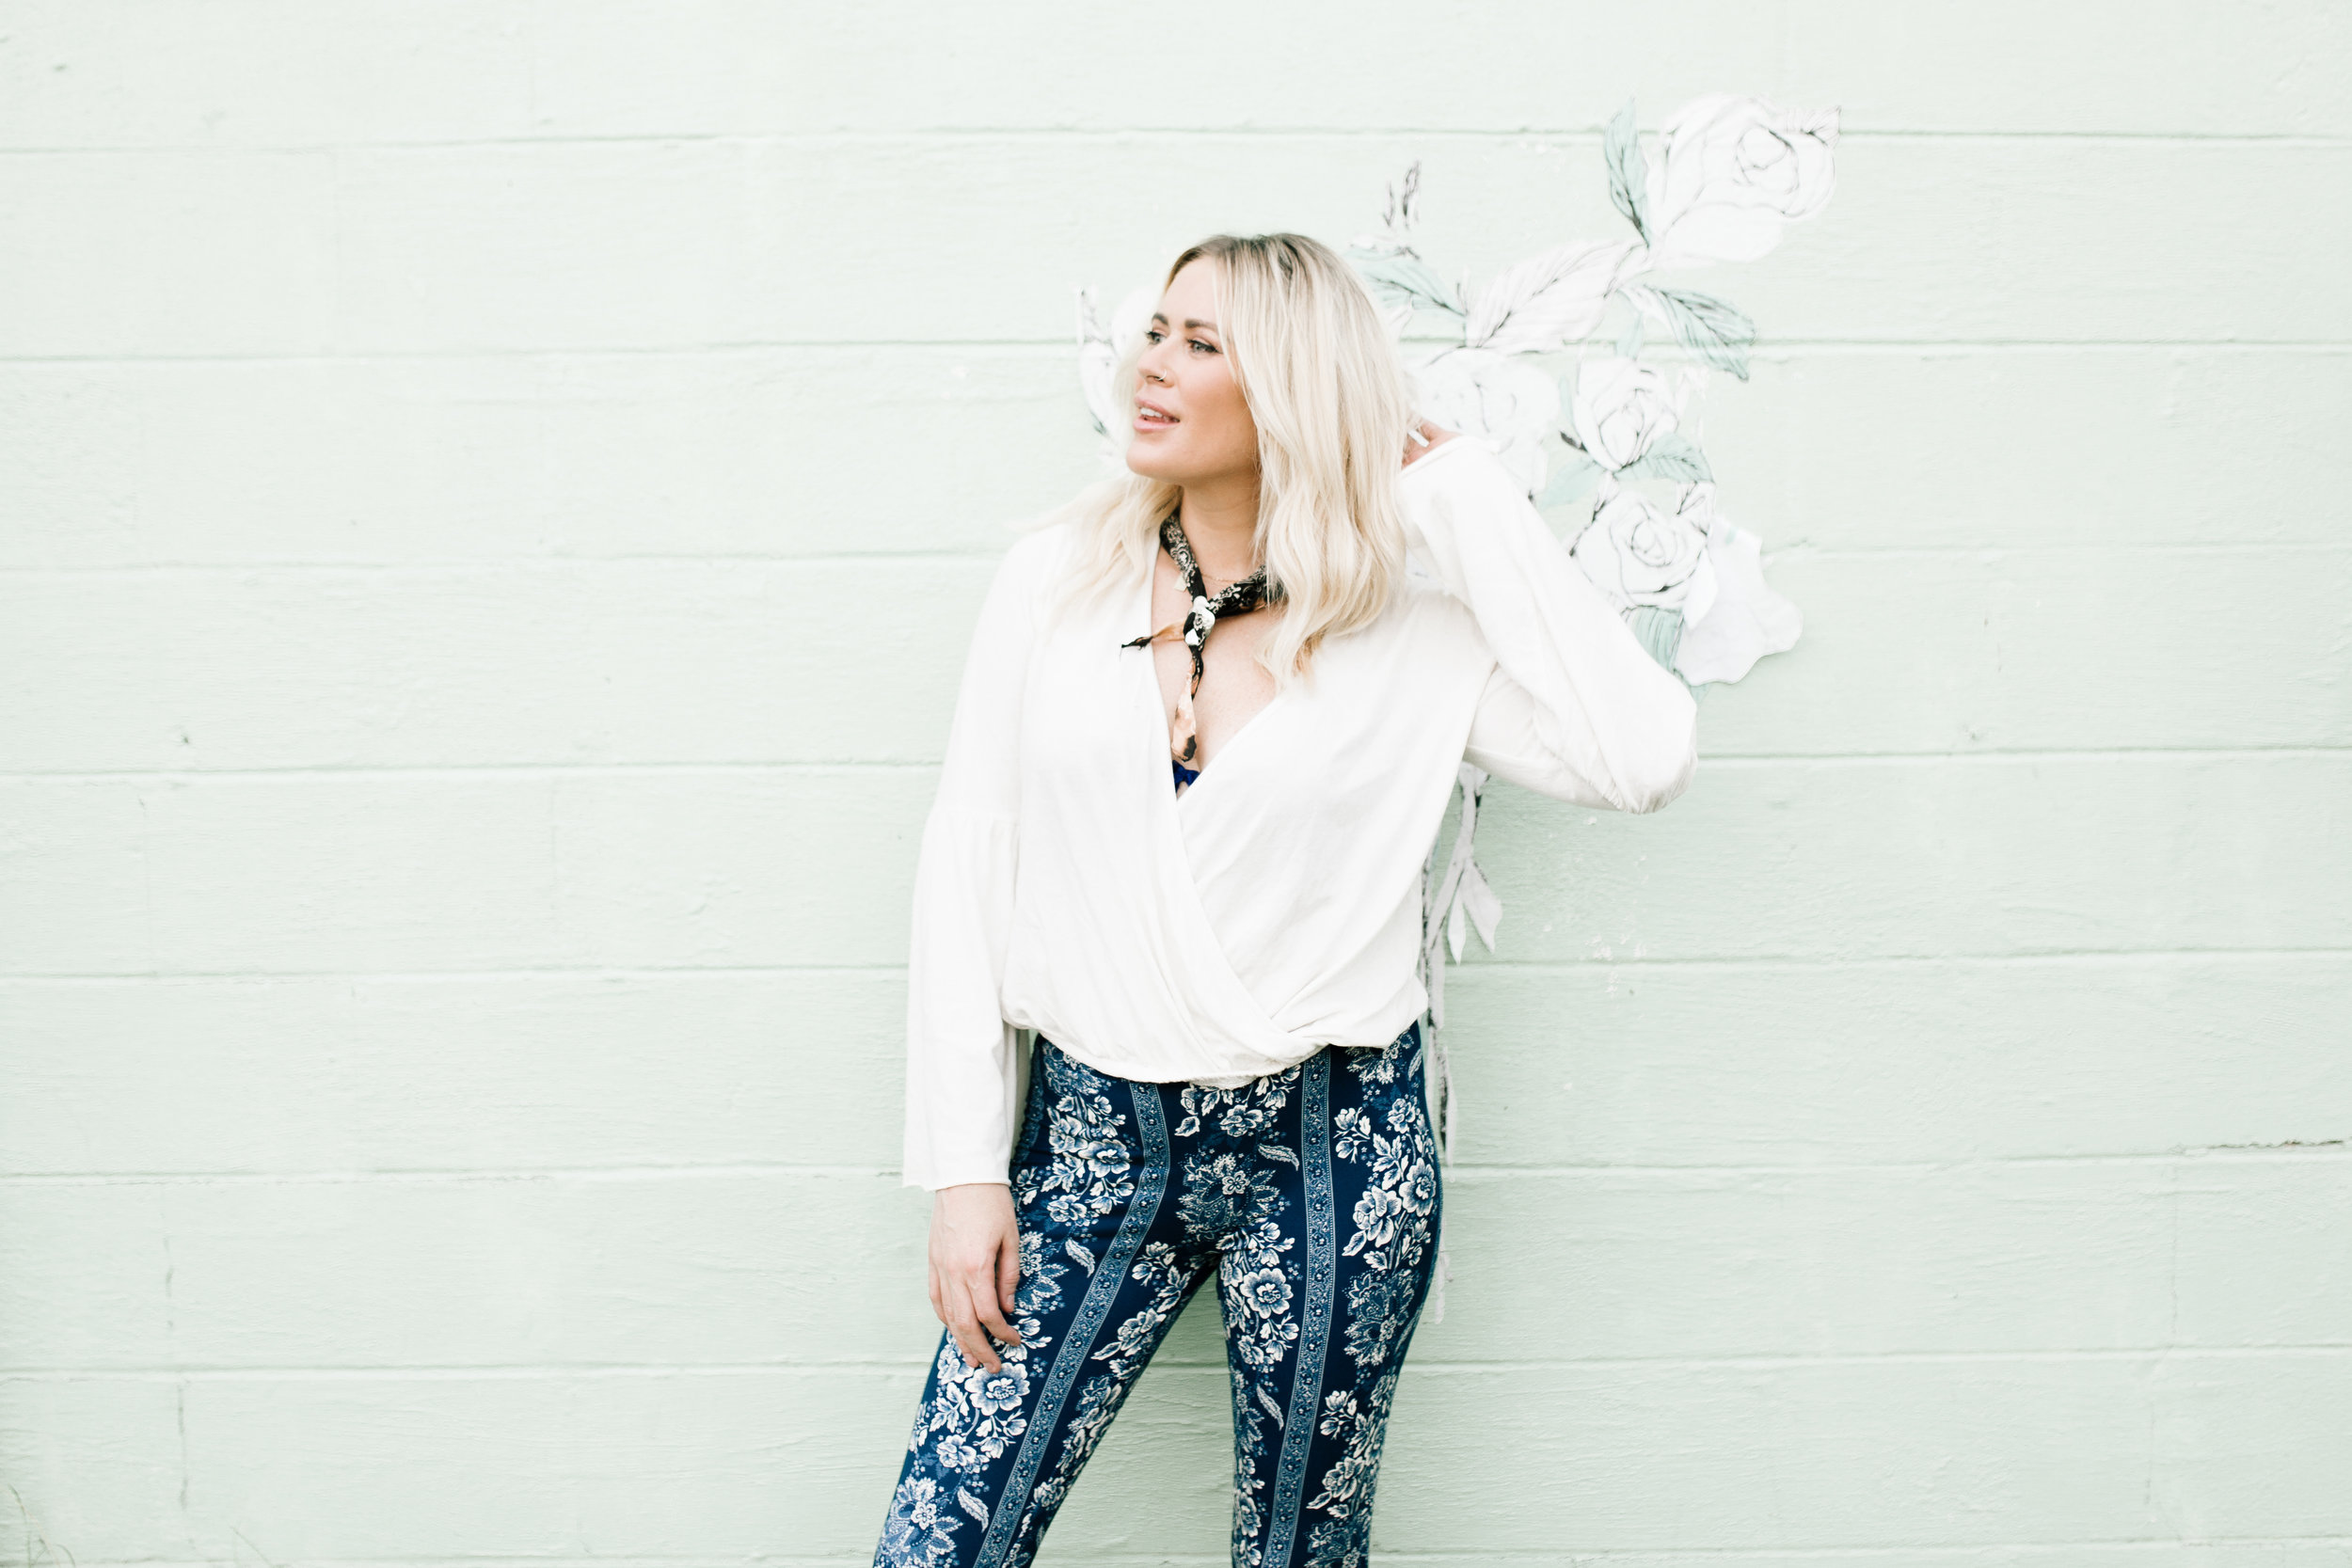 There is only one pair of these floral bells left in store and at KittyNashville.com